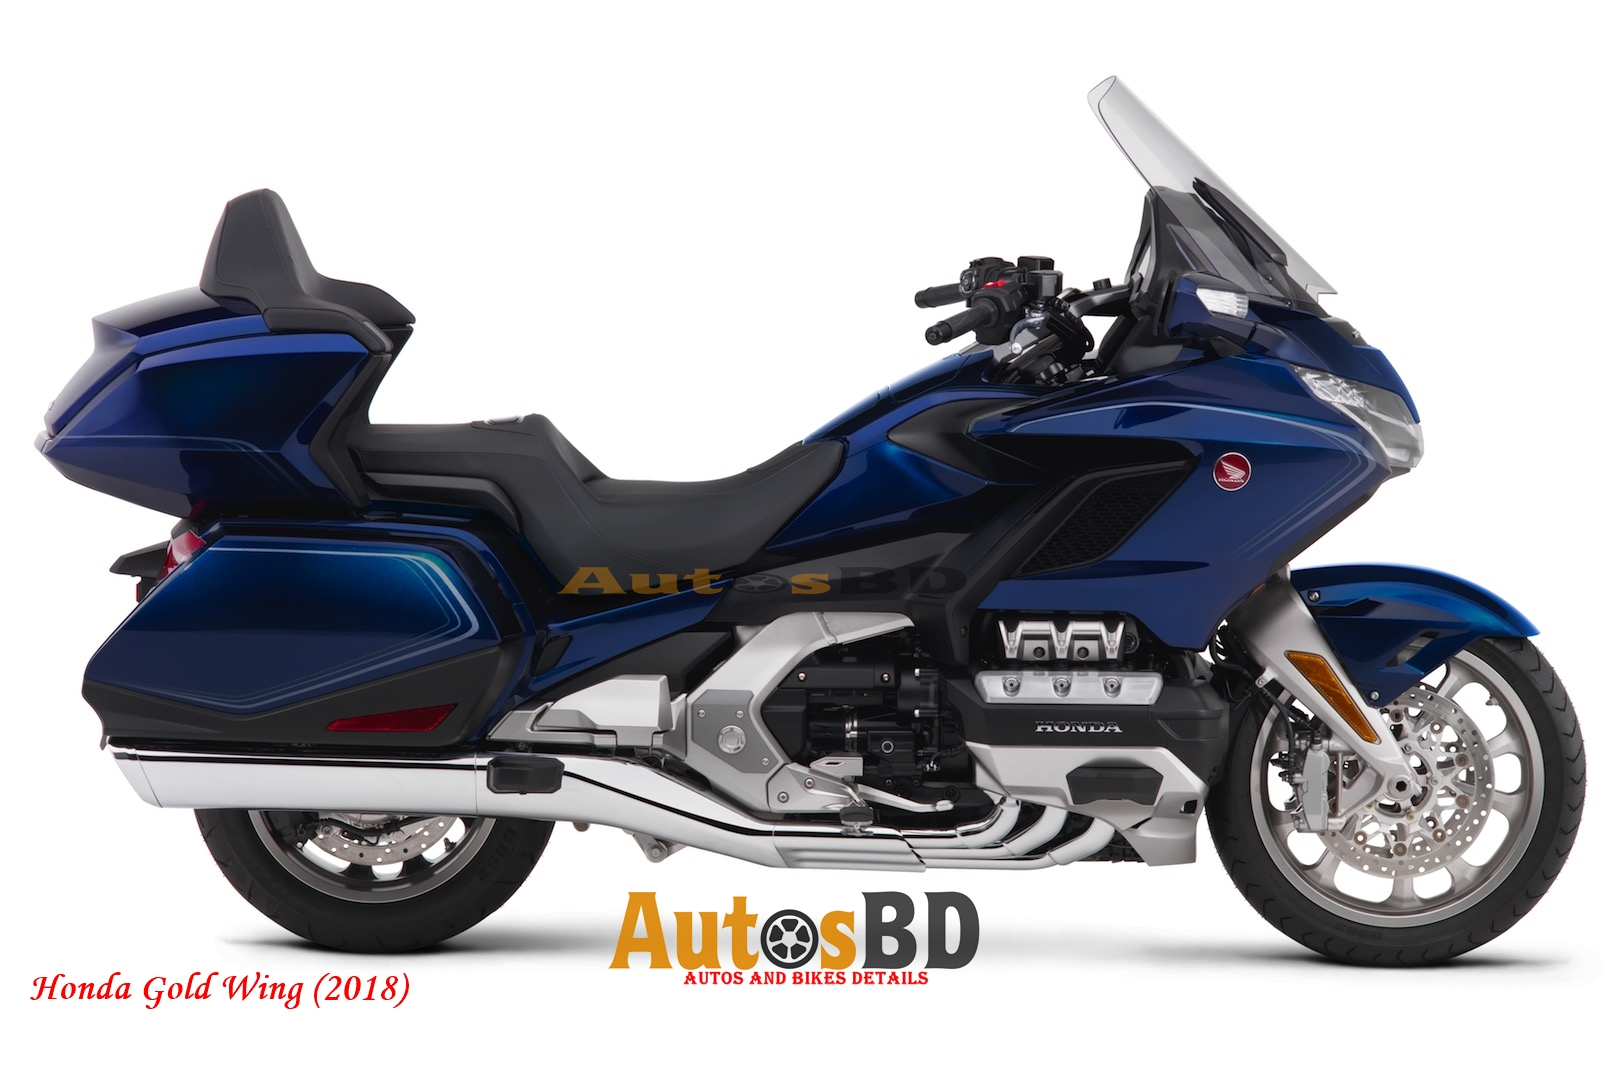 Honda Gold Wing (2018) Motorcycle Price in India